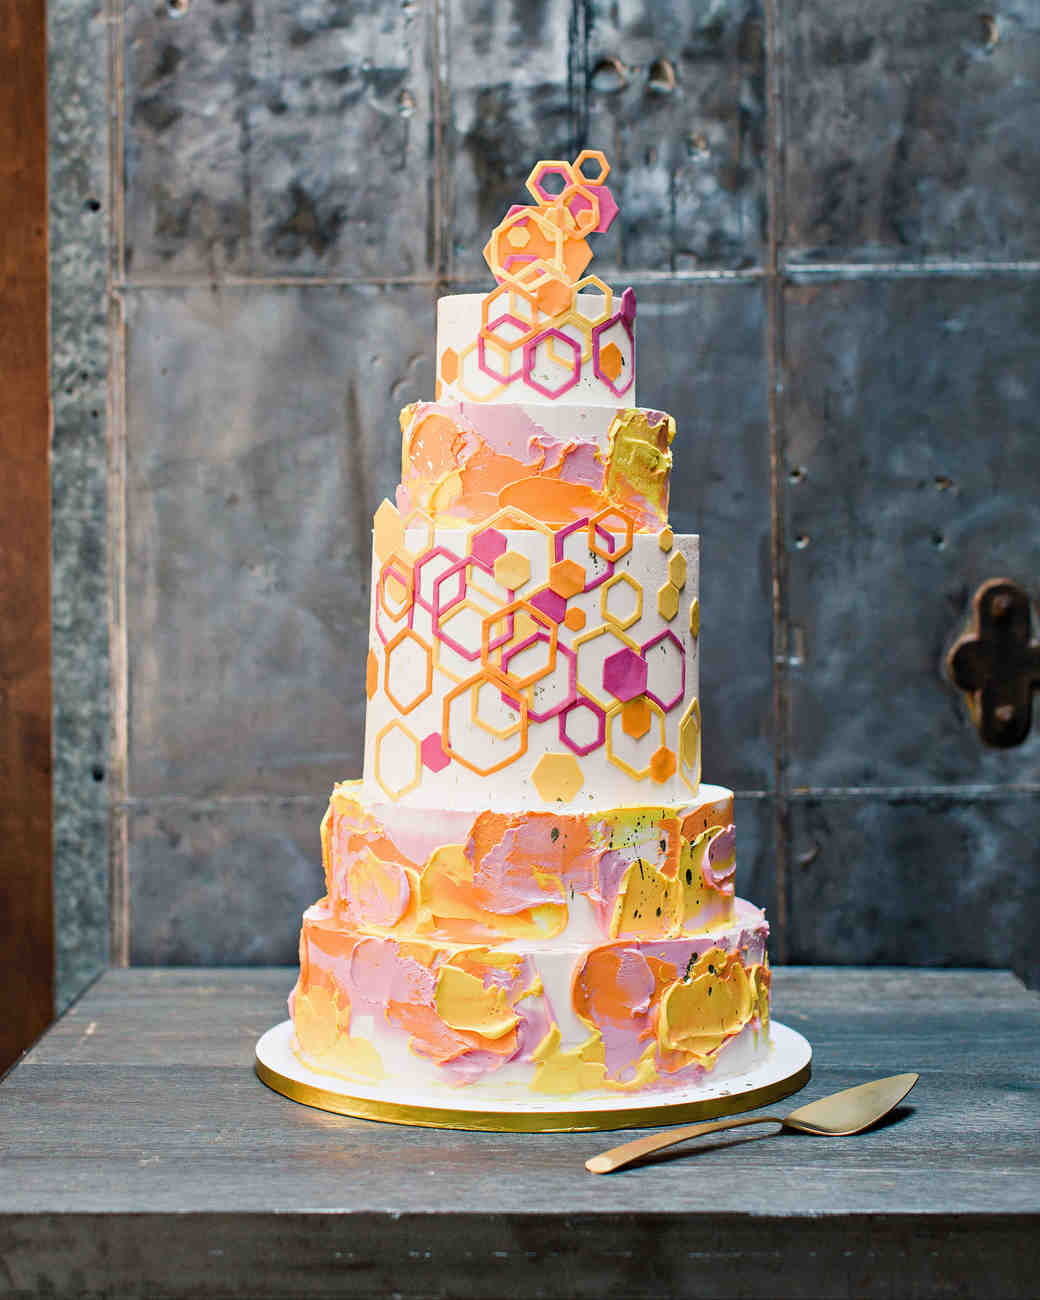 Wedding Cake Flavours And Fillings: 25 New Takes On Traditional Wedding Cake Flavors